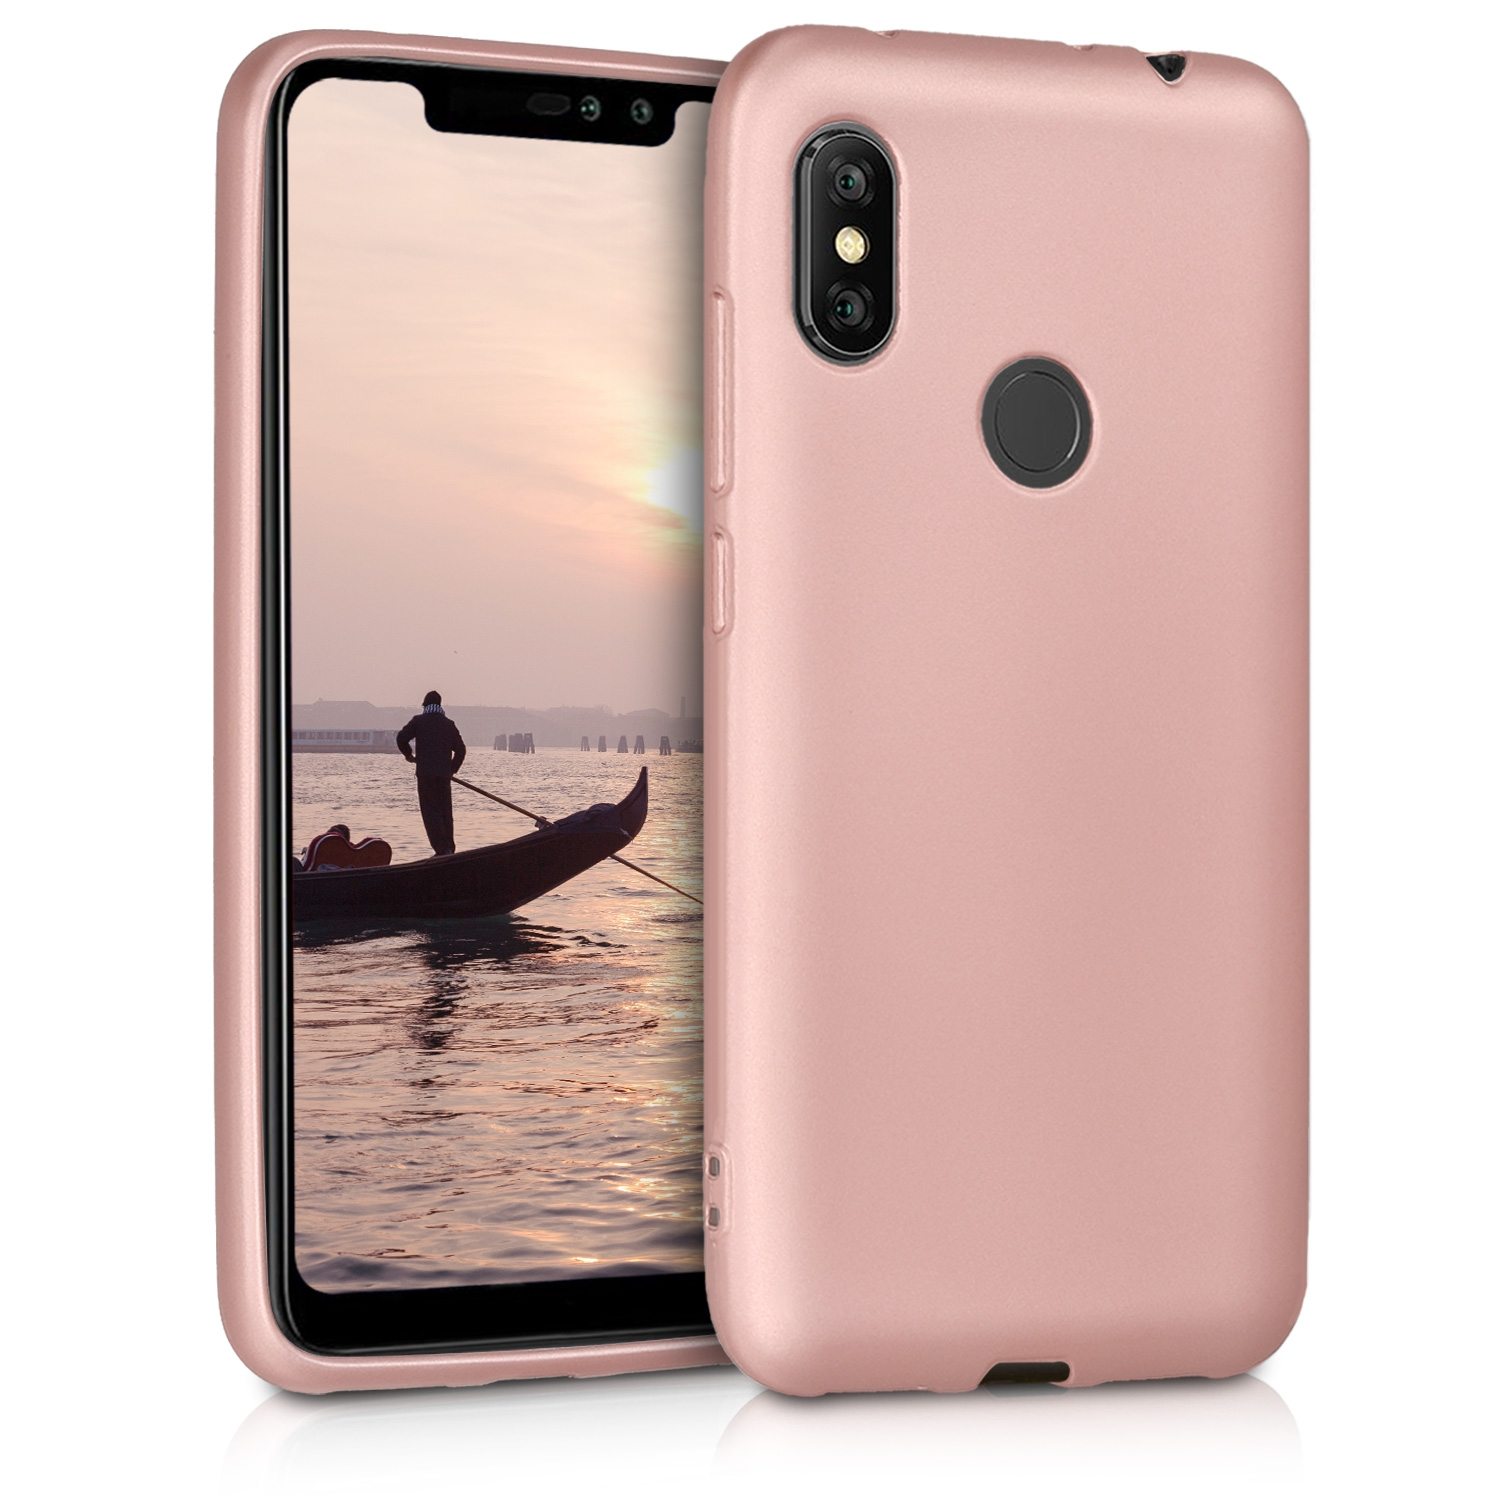 KW Θήκη Σιλικόνης Xiaomi Redmi Note 6 Pro - Metallic Rose Gold (46508.31)